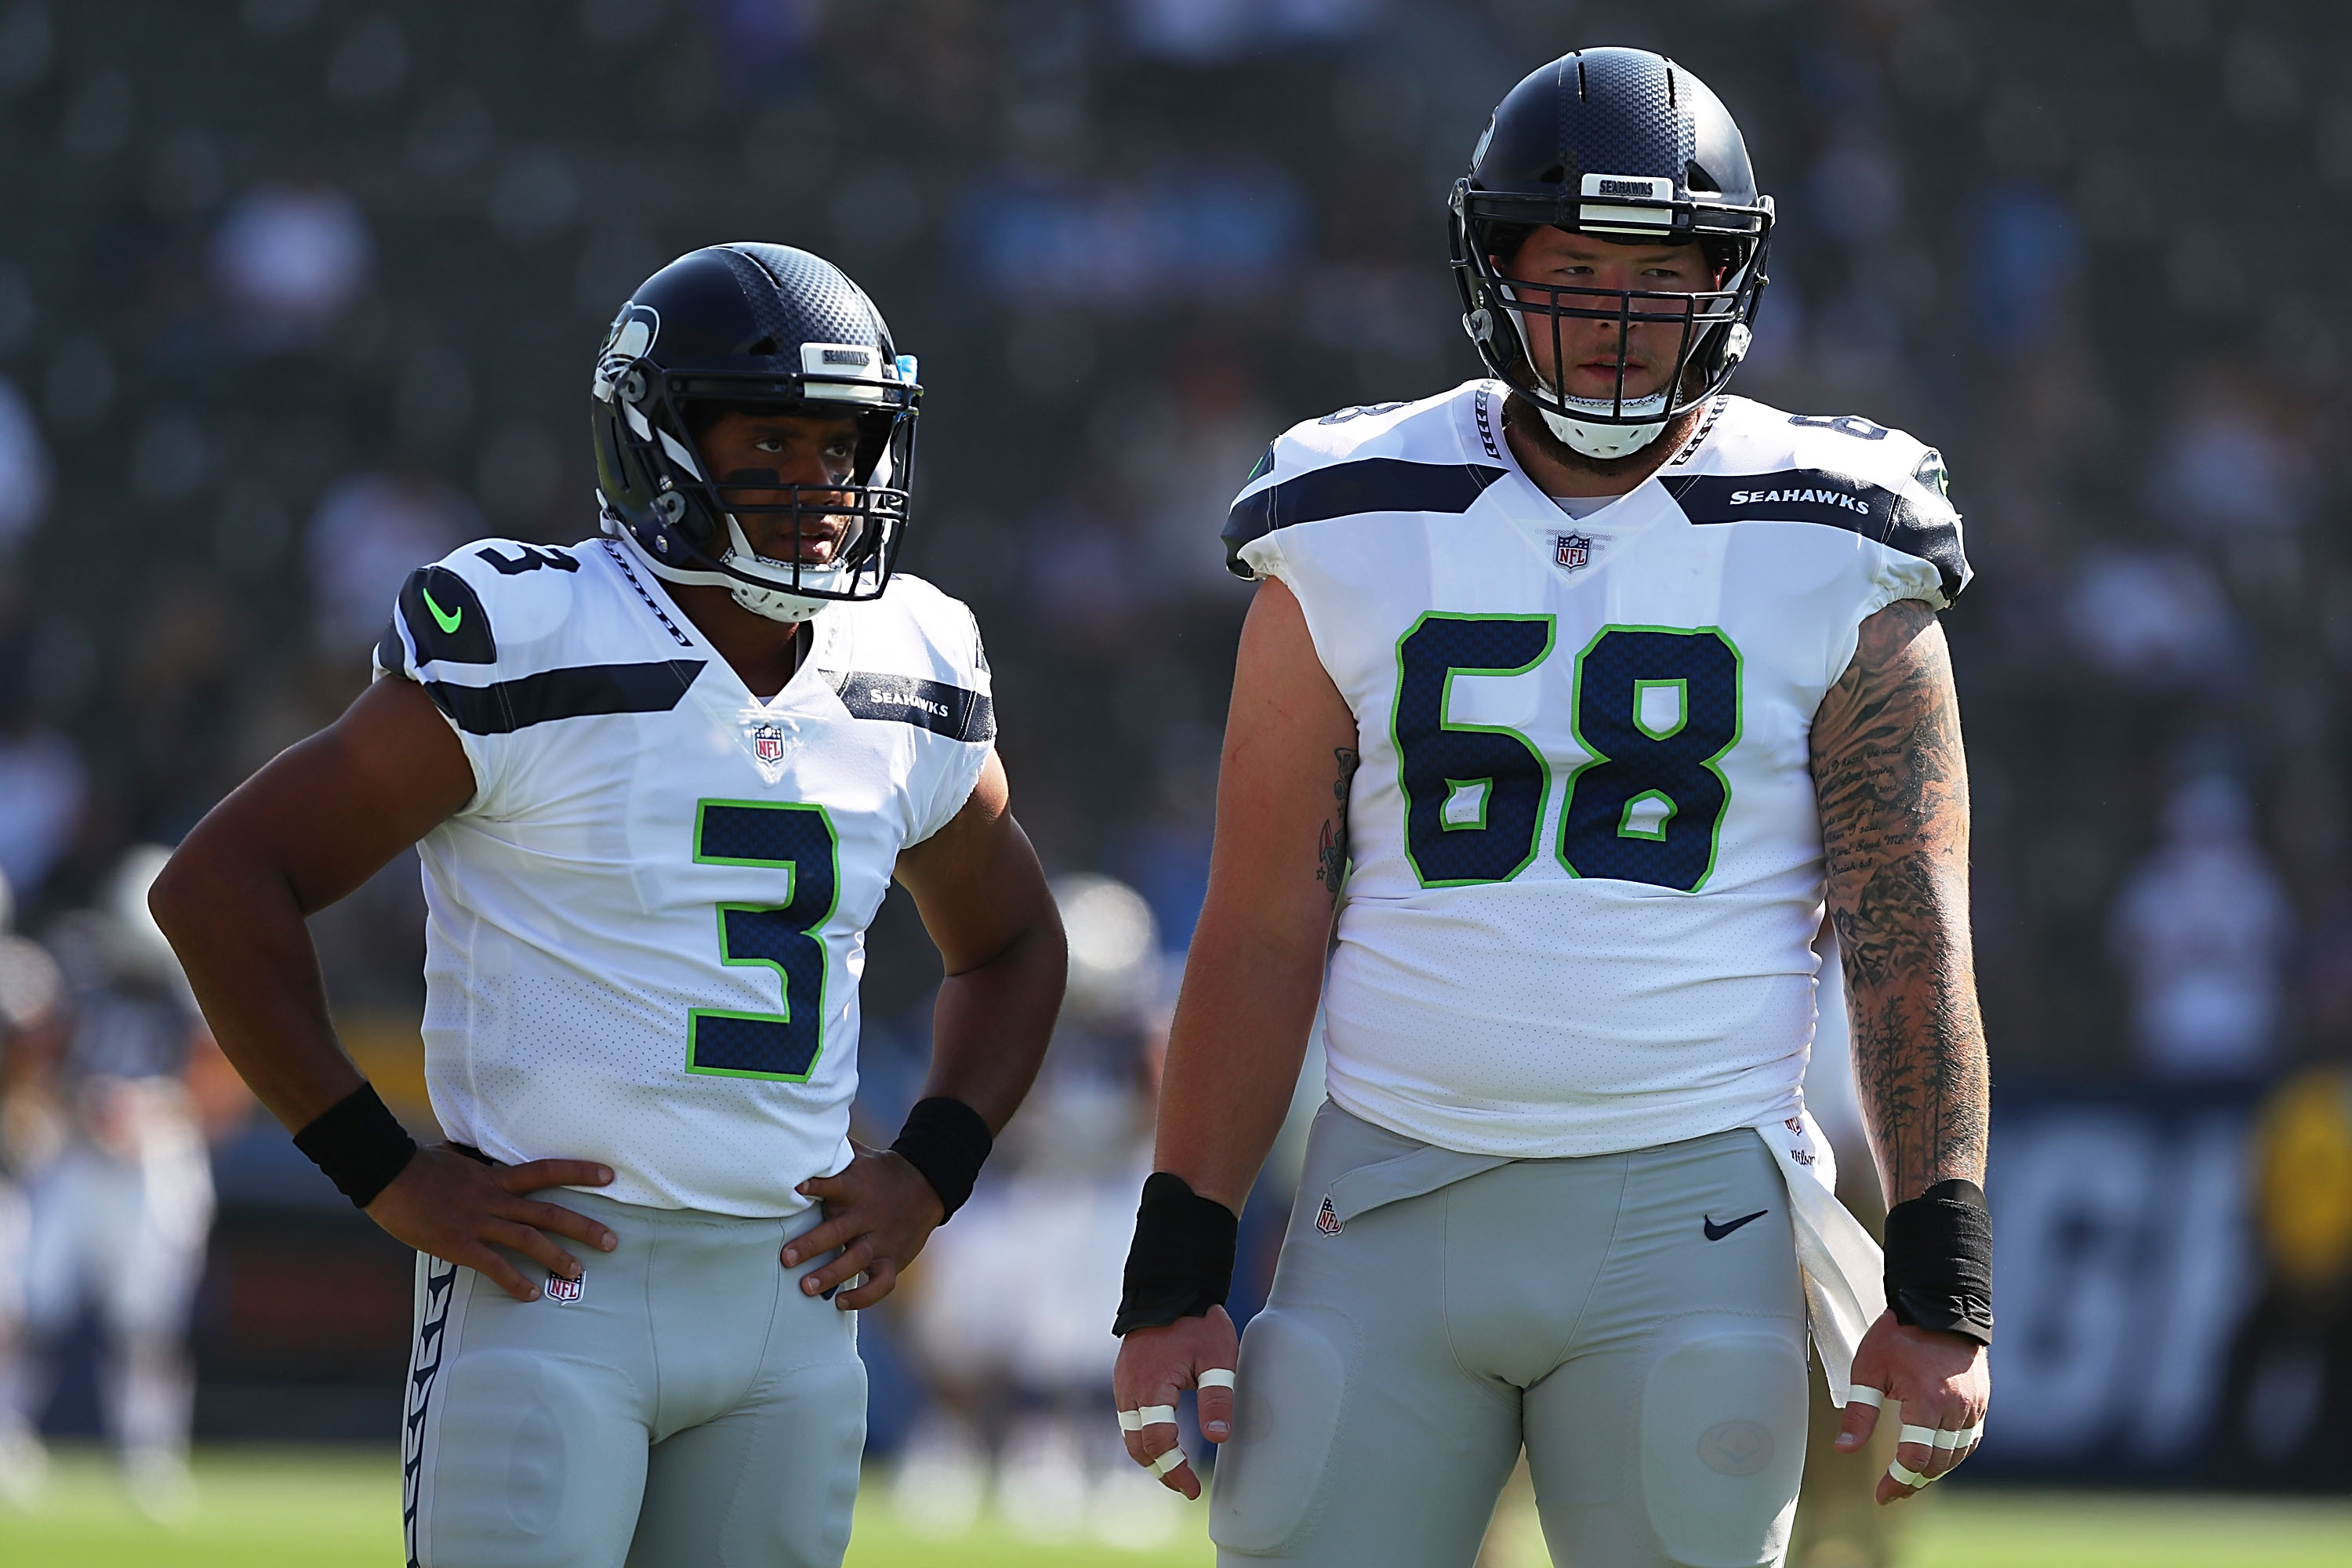 Justin Britt agrees to three-year extension with Seahawks